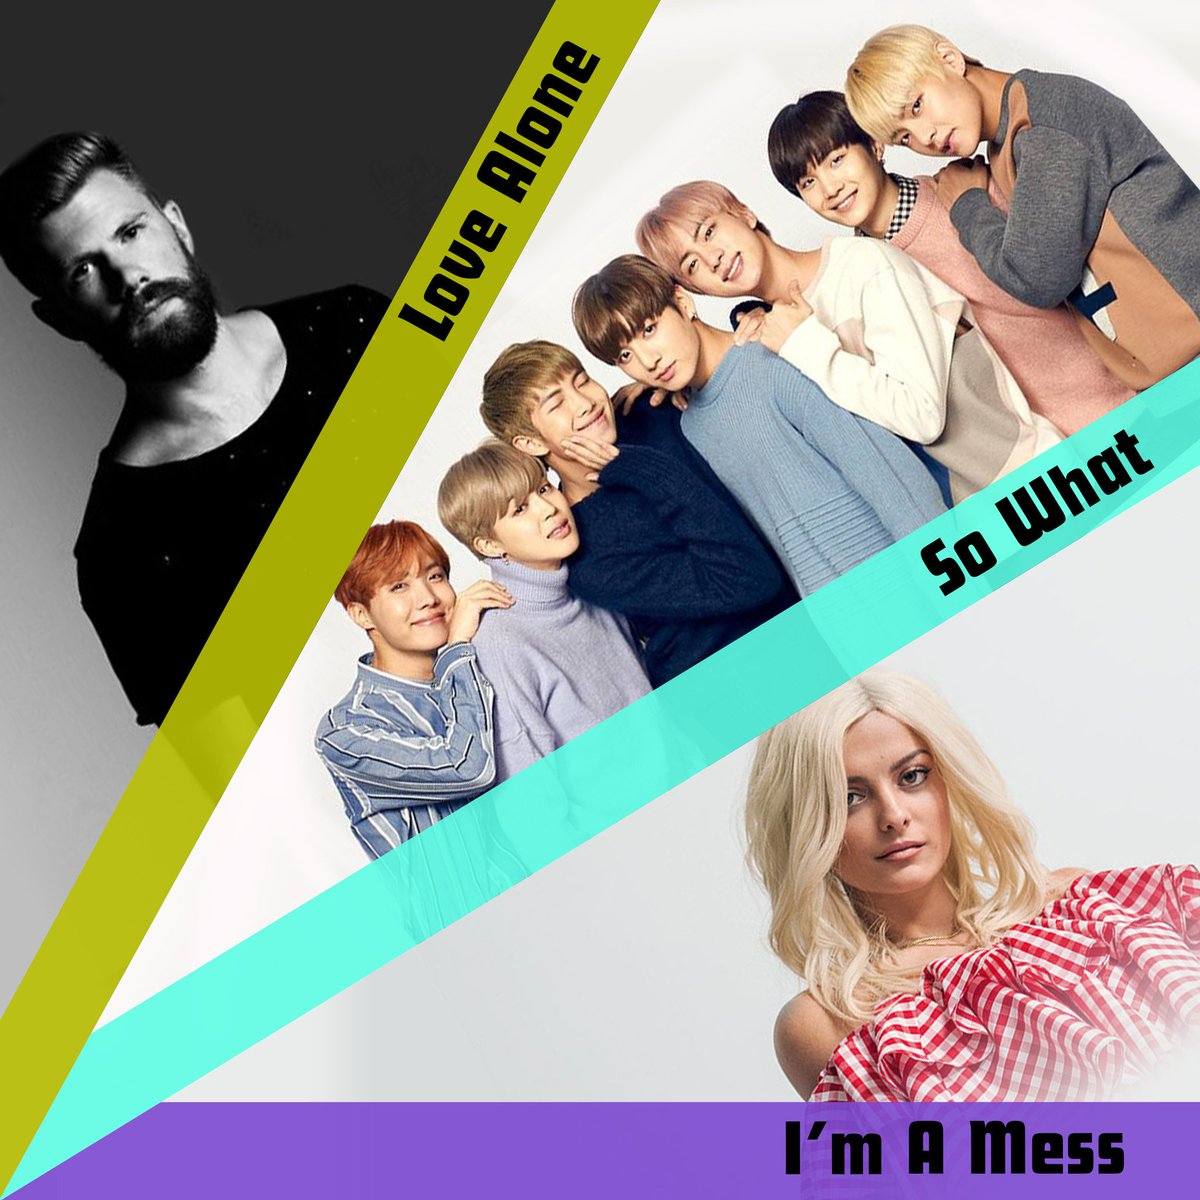 We have some amazing new songs now playing on Radio Disney! @thisismokita #LoveAlone 🎶 @BTS_twt @bts_bighit #SoWhat 🎶 @BebeRexha #ImAMess